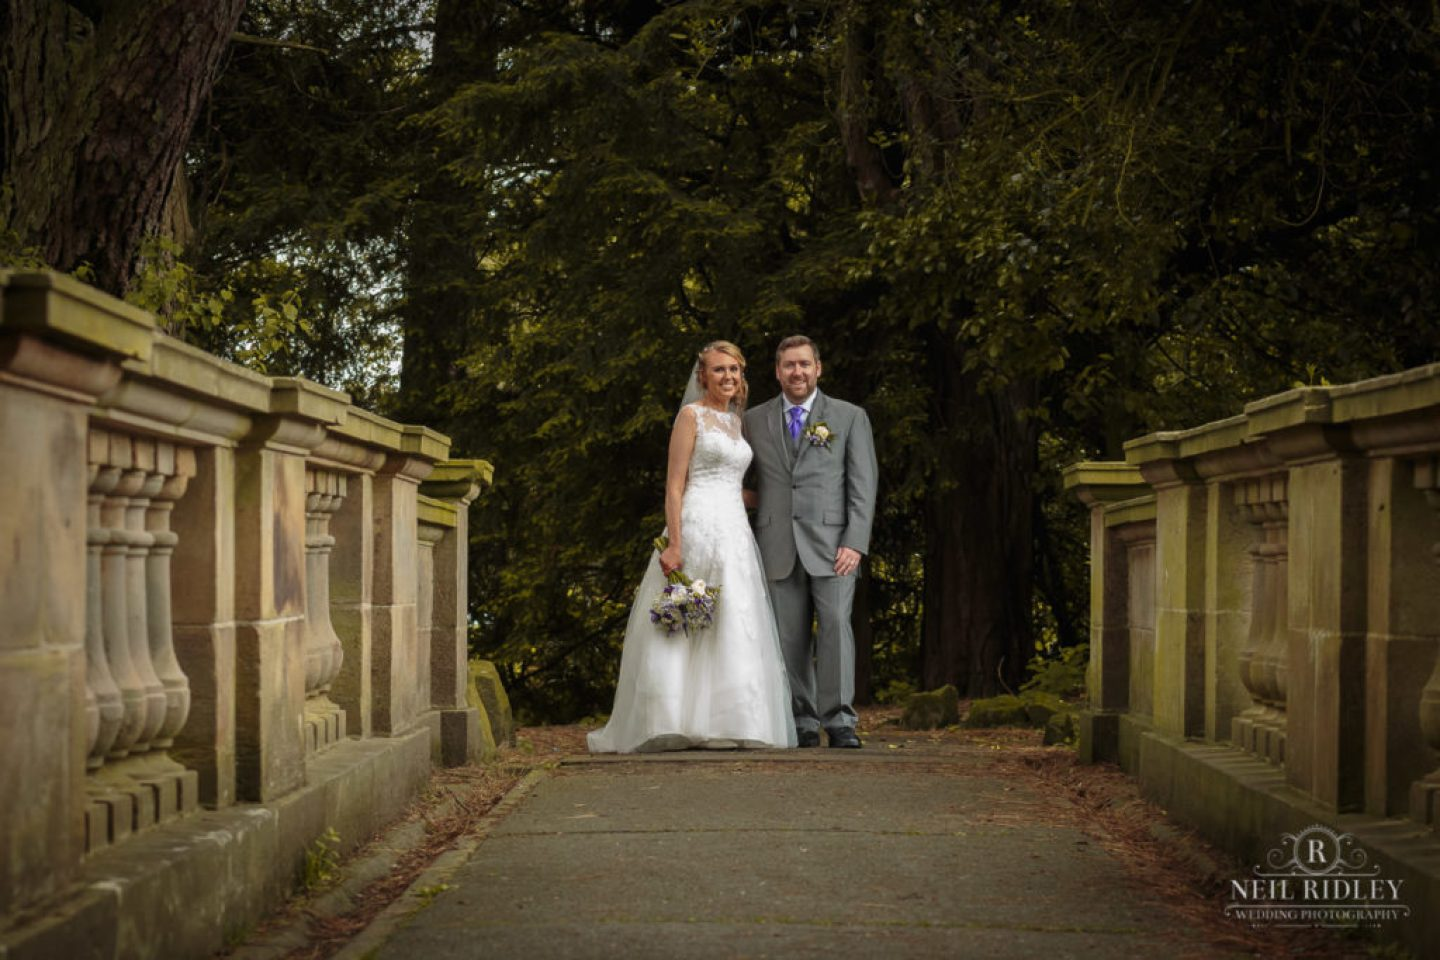 Lancaster Wedding Photographer - Bride and Groom stand on bridge at Williamson Park Lancaster